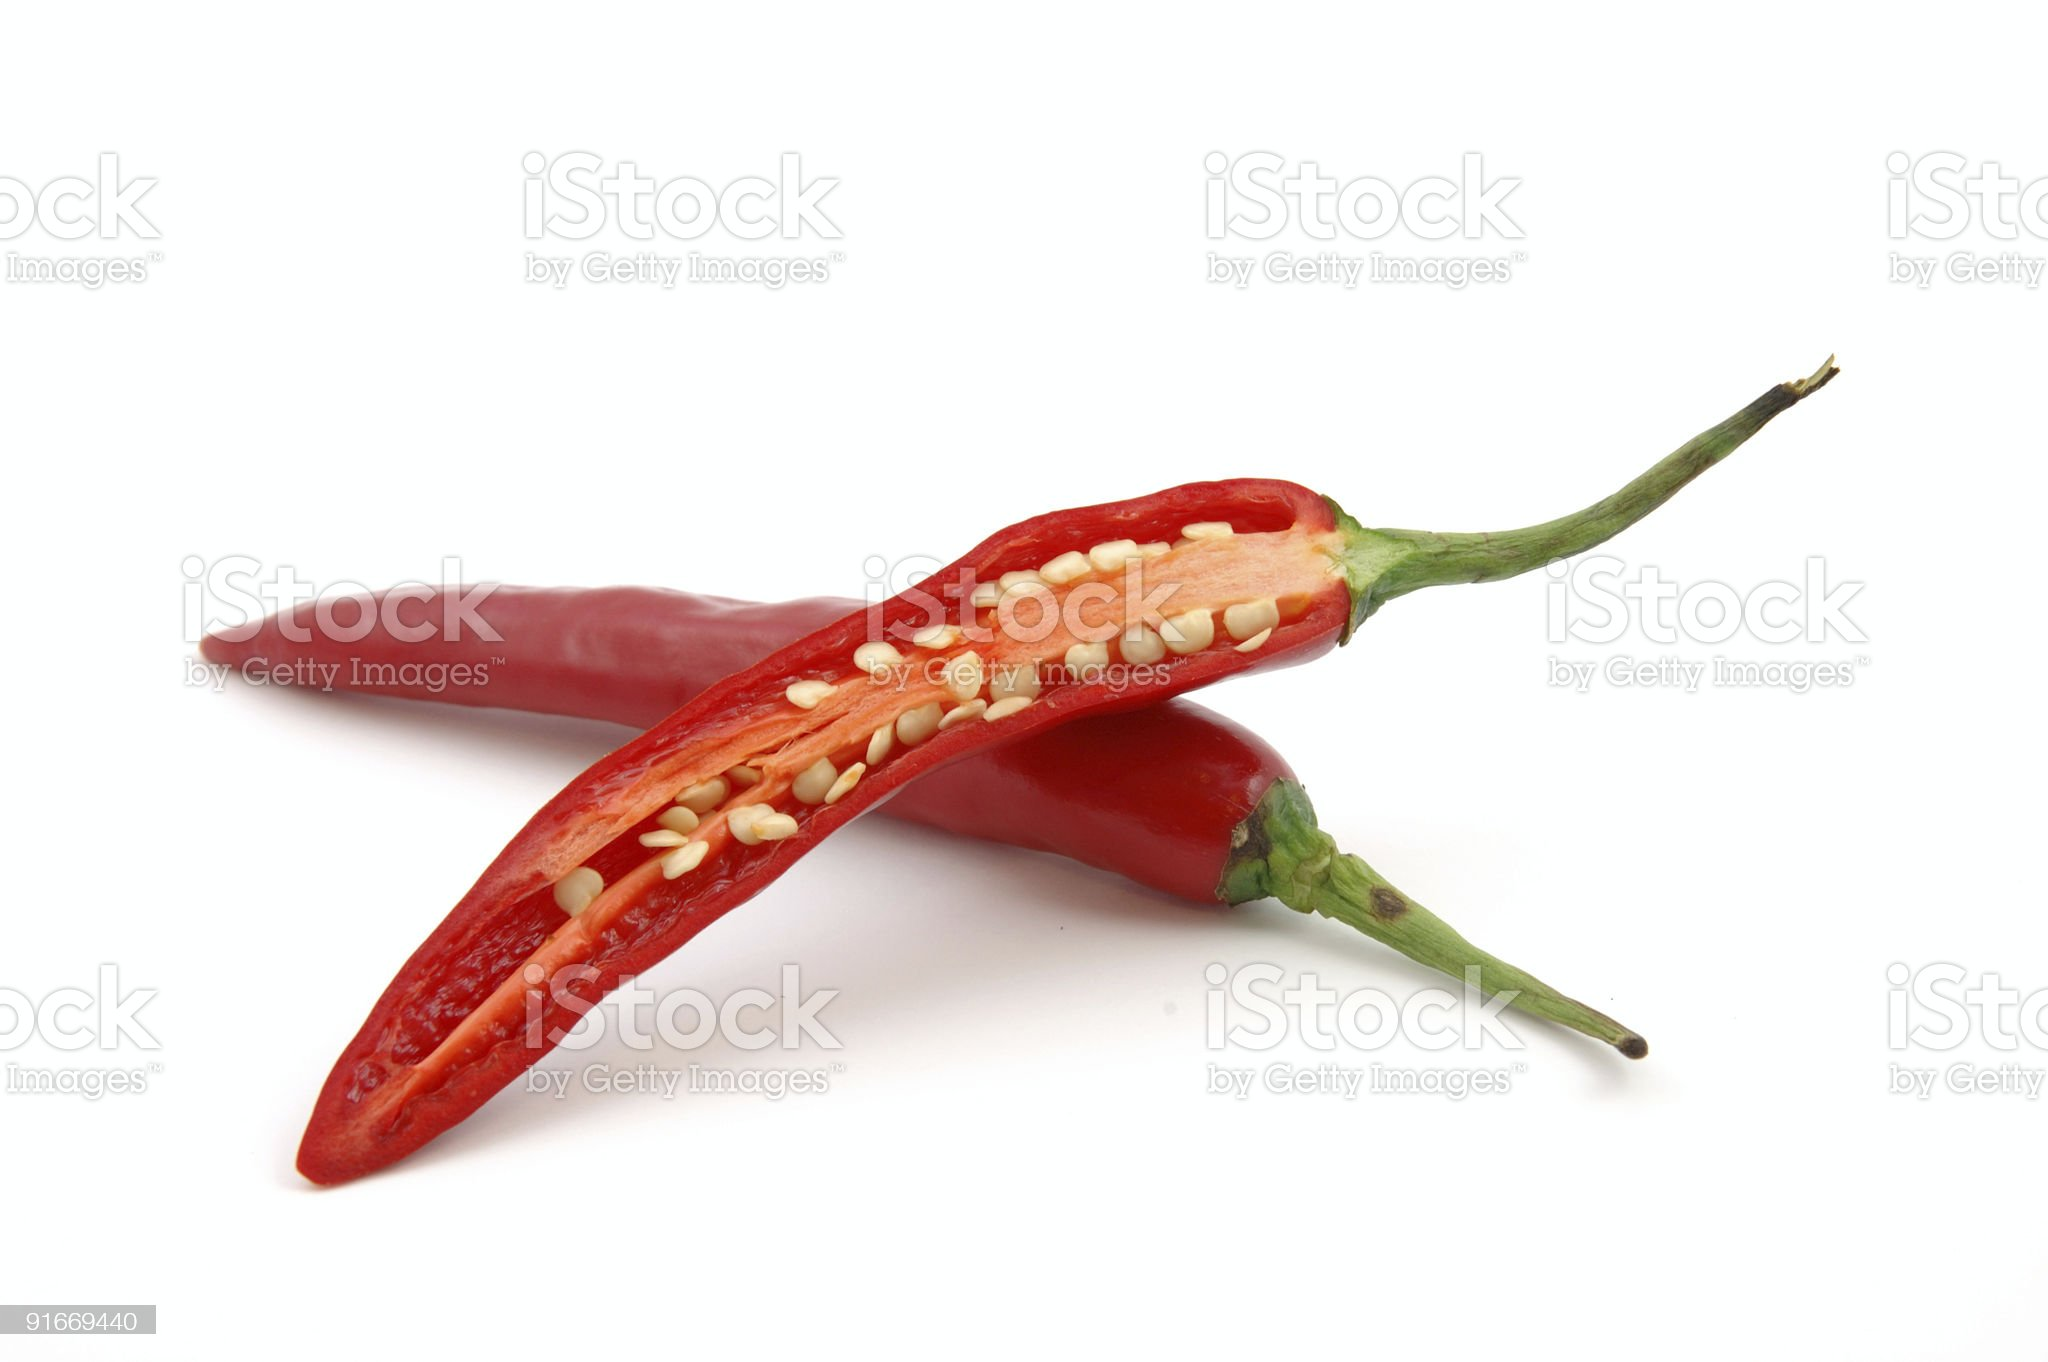 Cutted Red hot chili peppers royalty-free stock photo